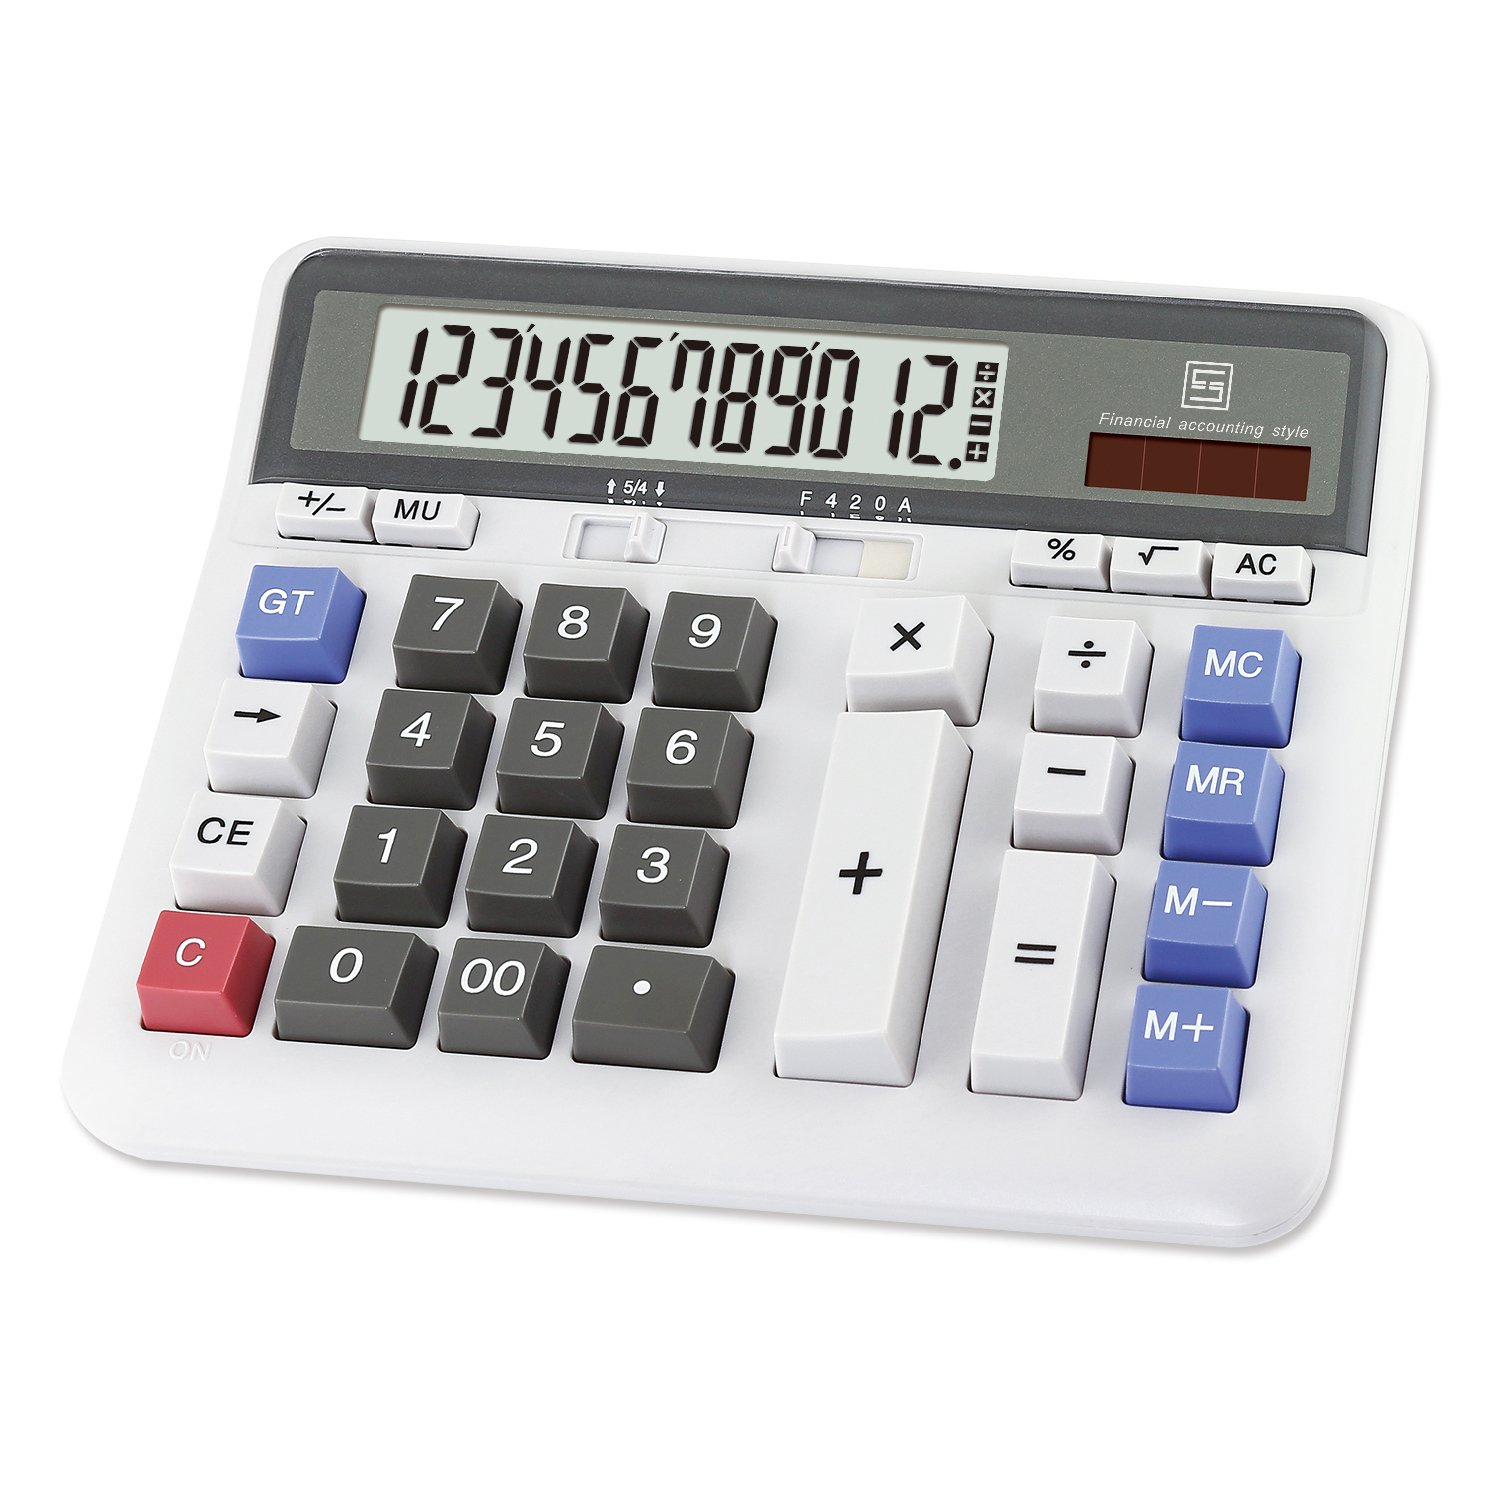 OFFIDIX Office Computer Key Electronic Calculator, Financial Calculators for Bank Stuff and Accouter, Financial Accounting Style 12-Digit Display with Battery and Solar Desktop Calculator Fathers' Day by OFFIDIX